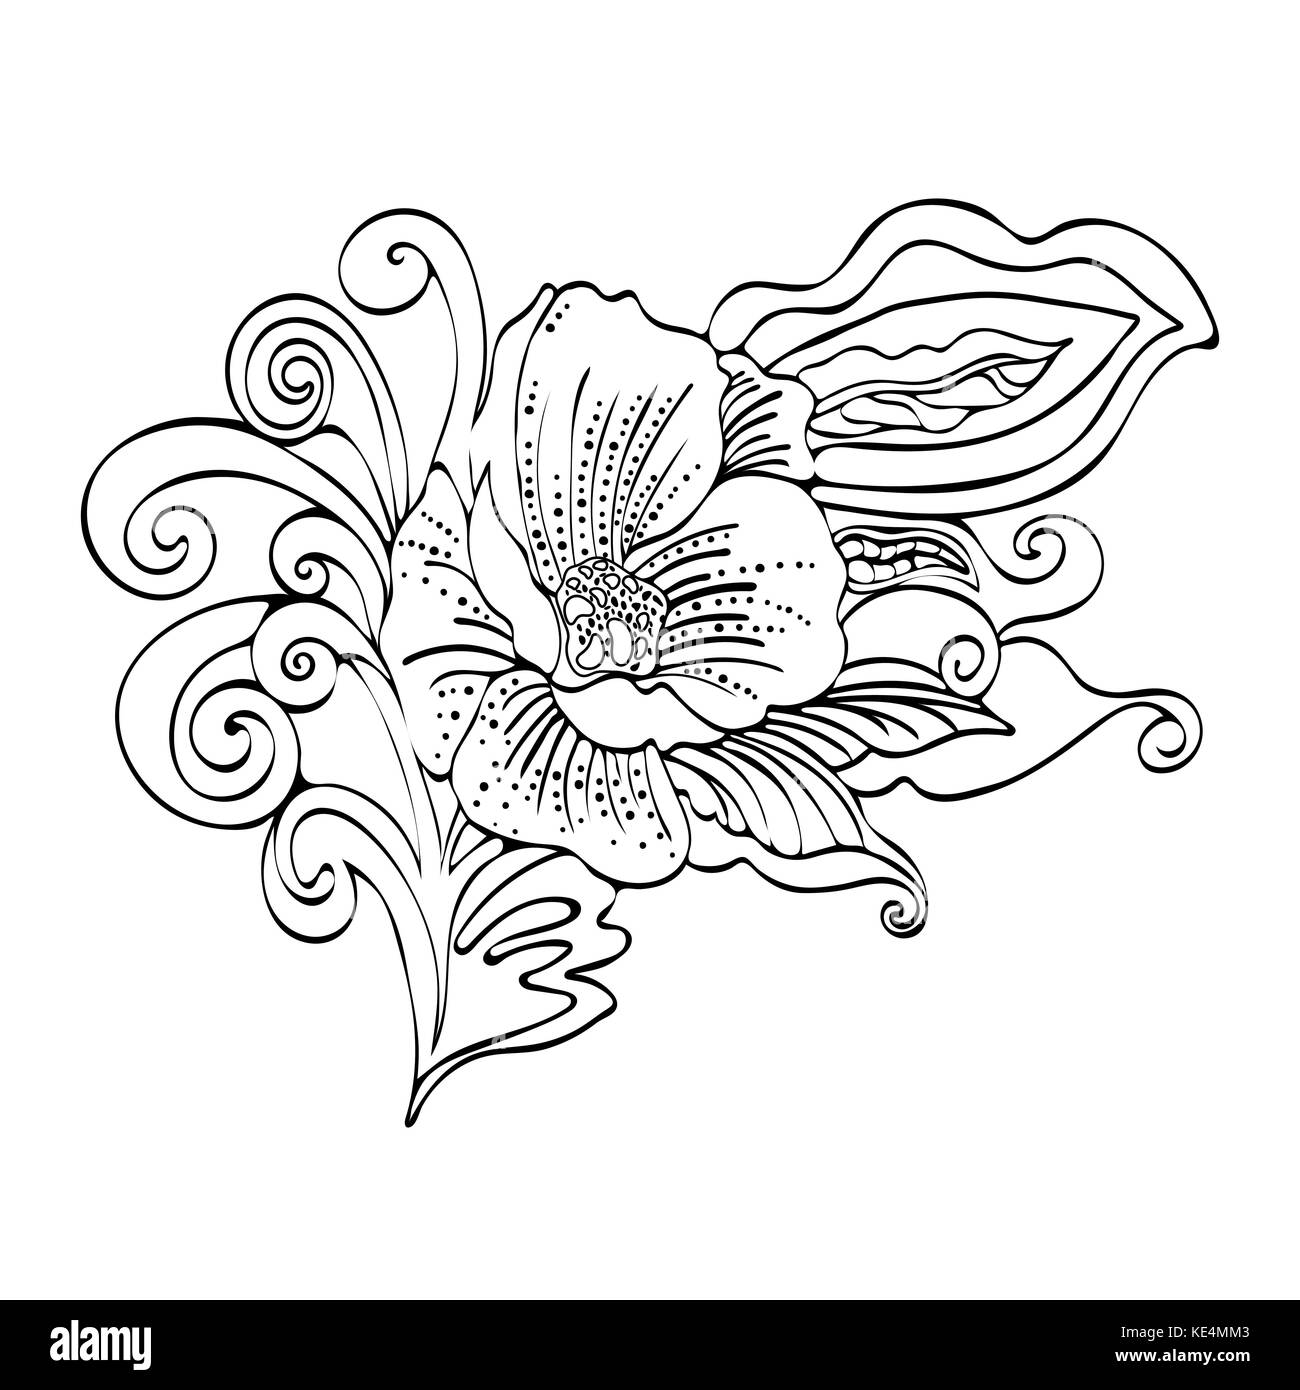 Abstract flower cartoon vector black and white contour hand drawn abstract flower cartoon vector black and white contour hand drawn outline monochrome illustration coloring book sketch bud petals stem leaves mightylinksfo